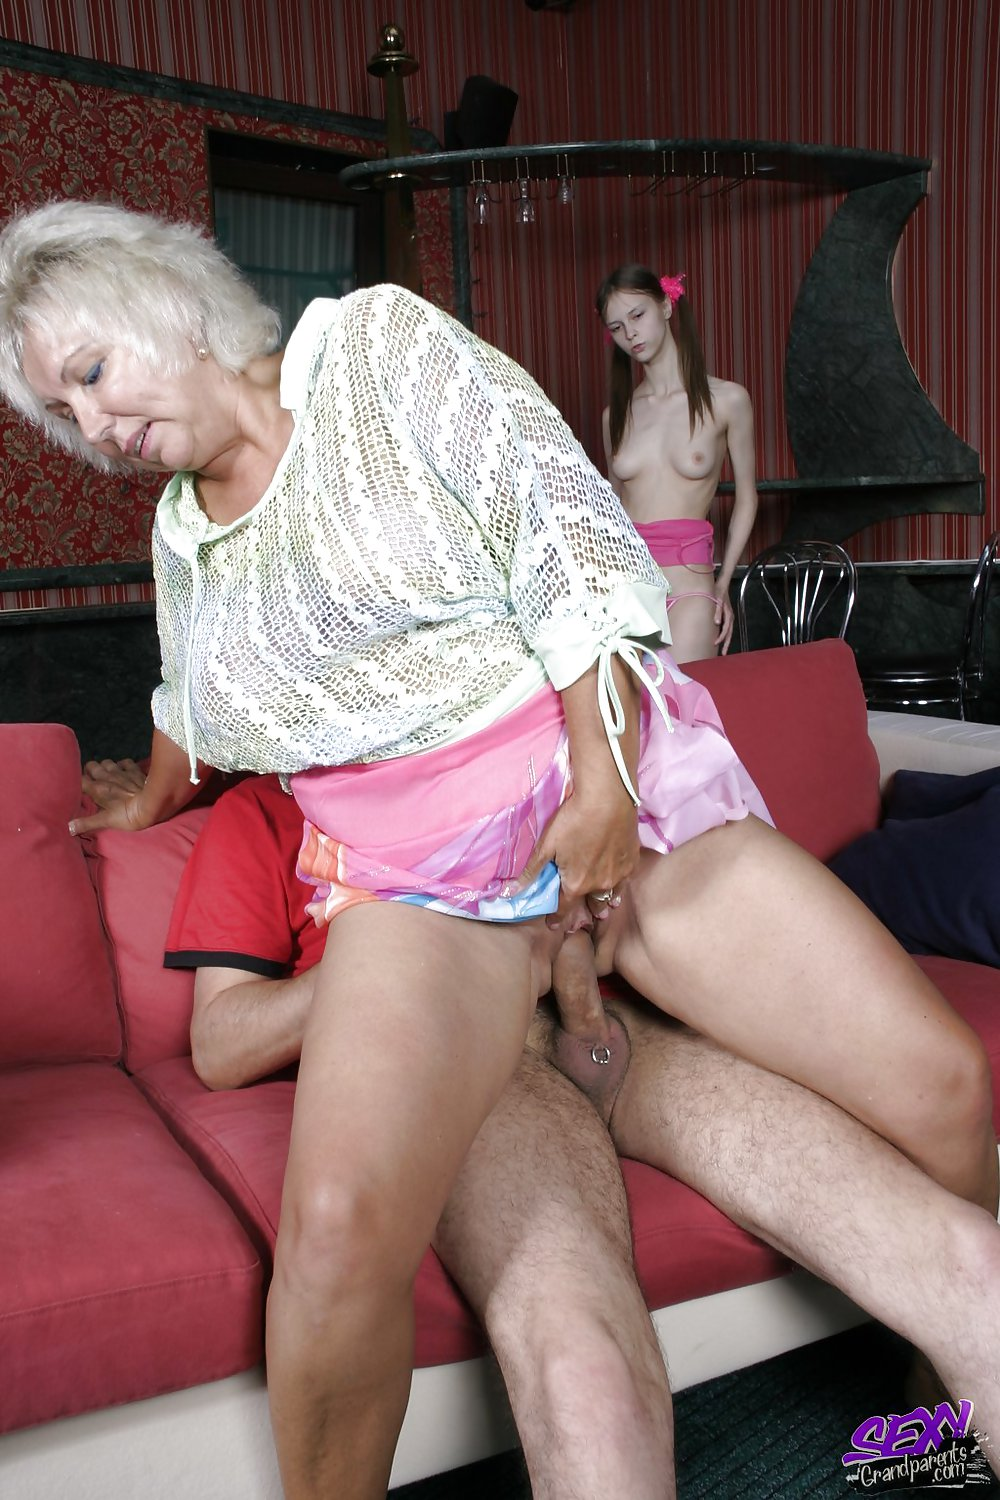 couple-pamela-grandma-granddaughter-sex-girls-sex-images